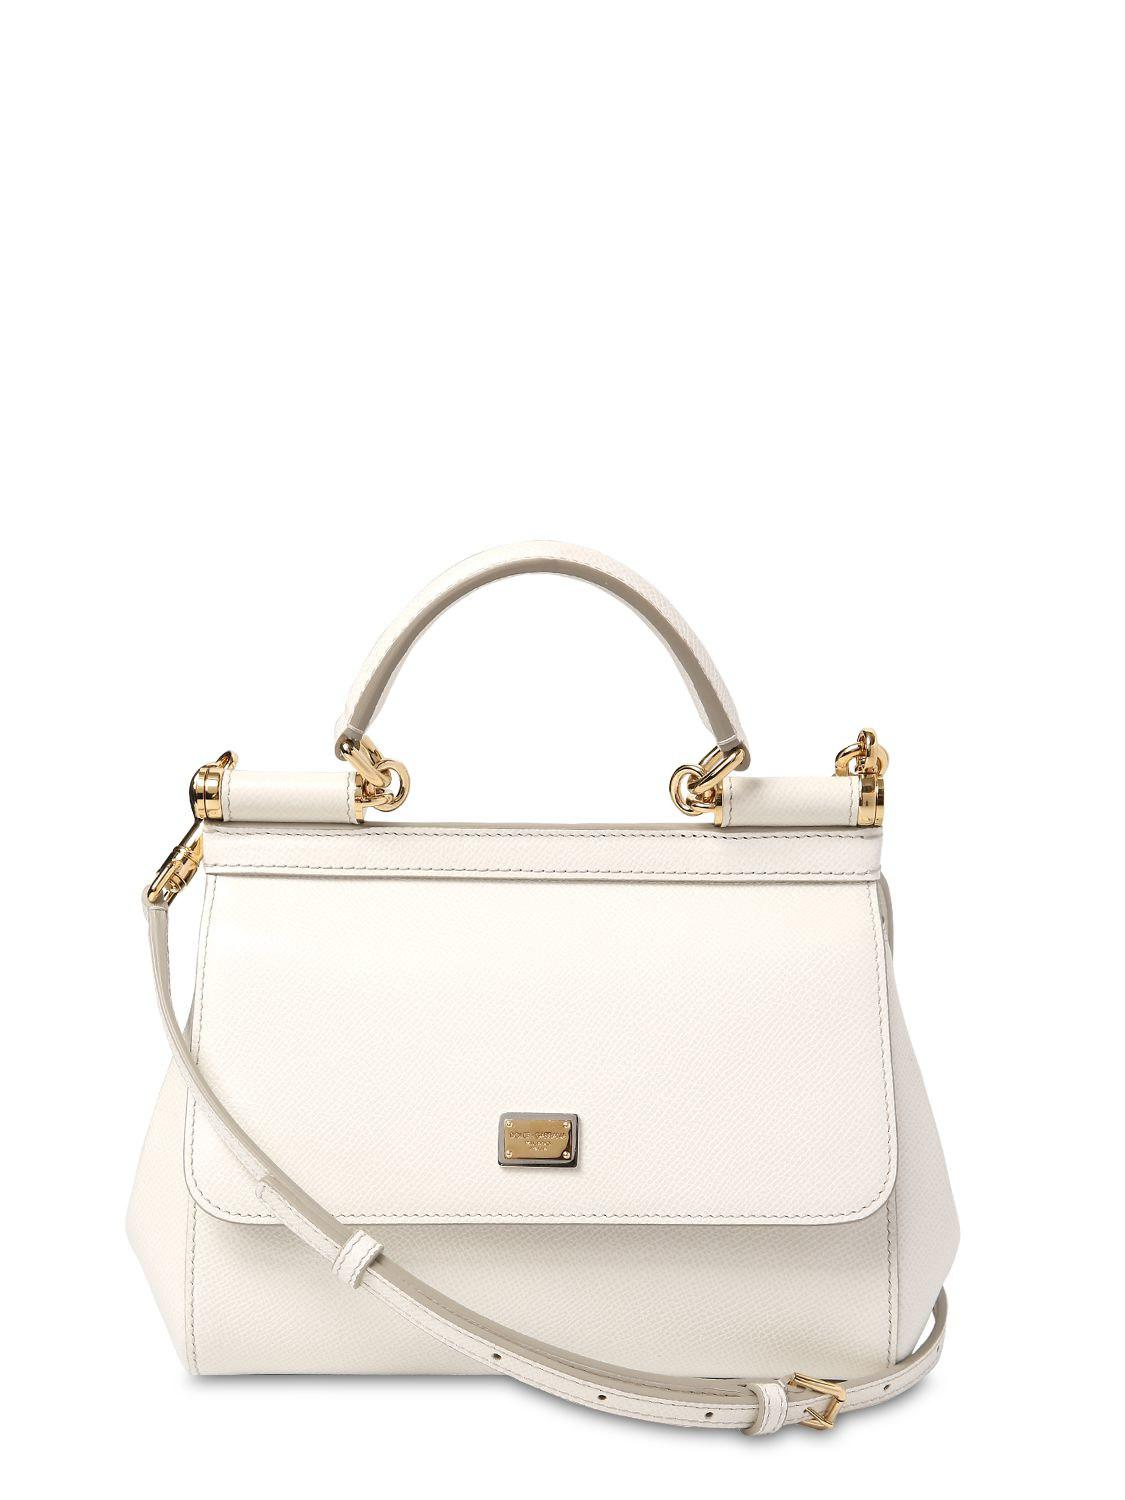 3363aa21ad Lyst - Dolce   Gabbana Small Sicily Dauphine Leather Bag in White